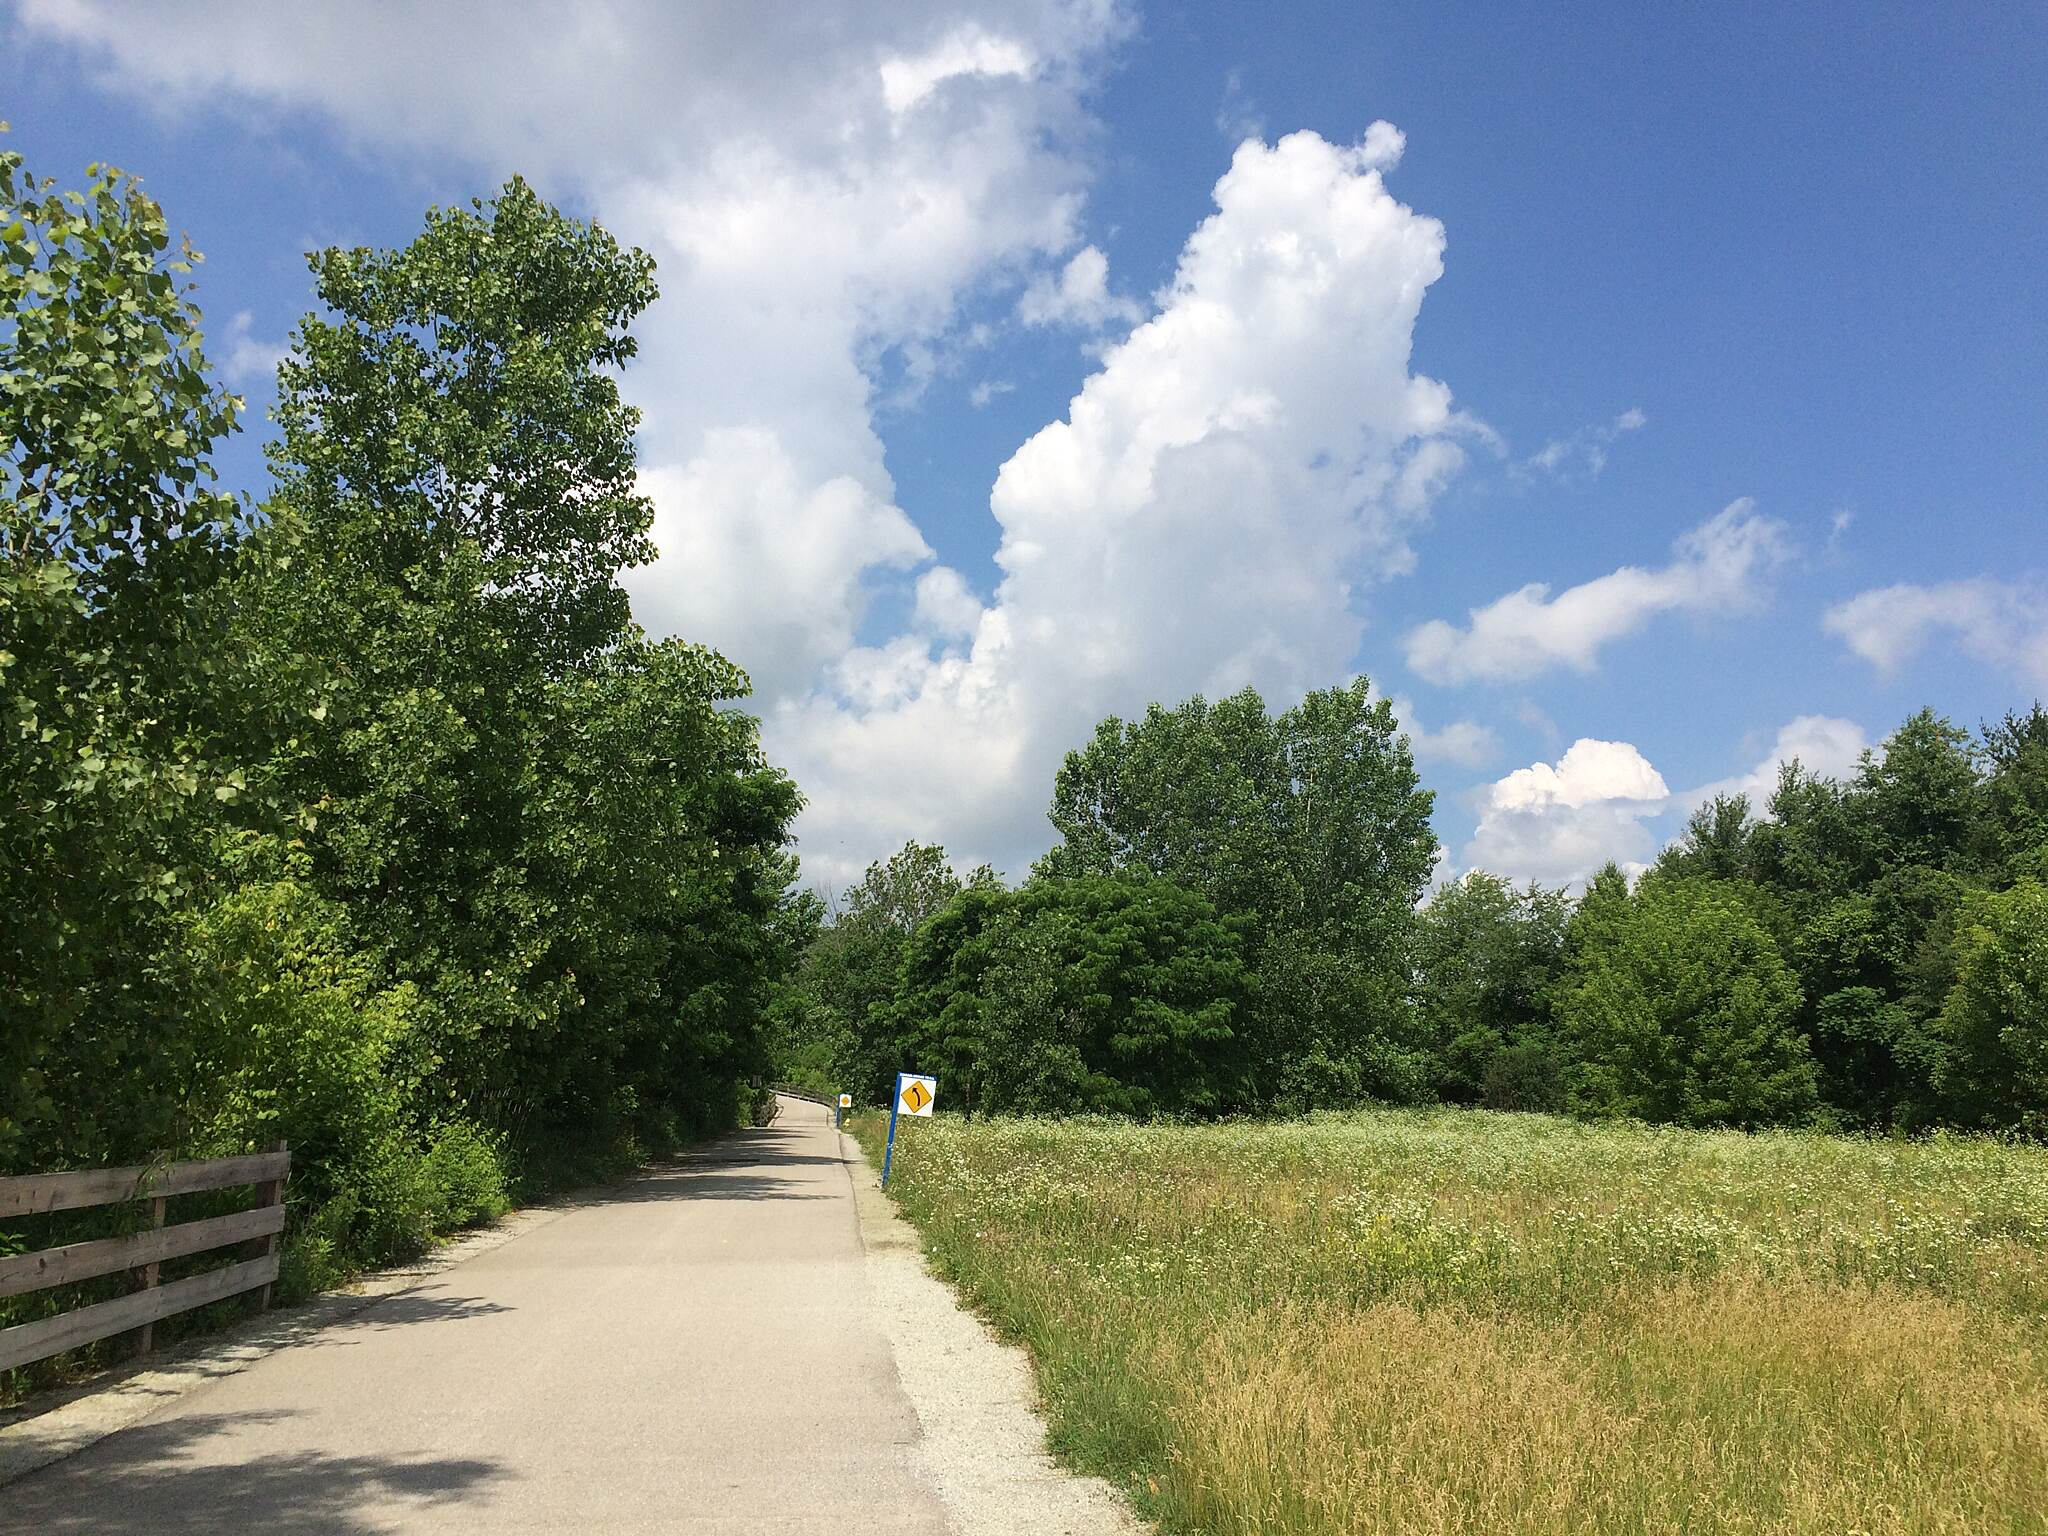 Hagan-Burke Trail Between Rangeline rd and Monon trail.